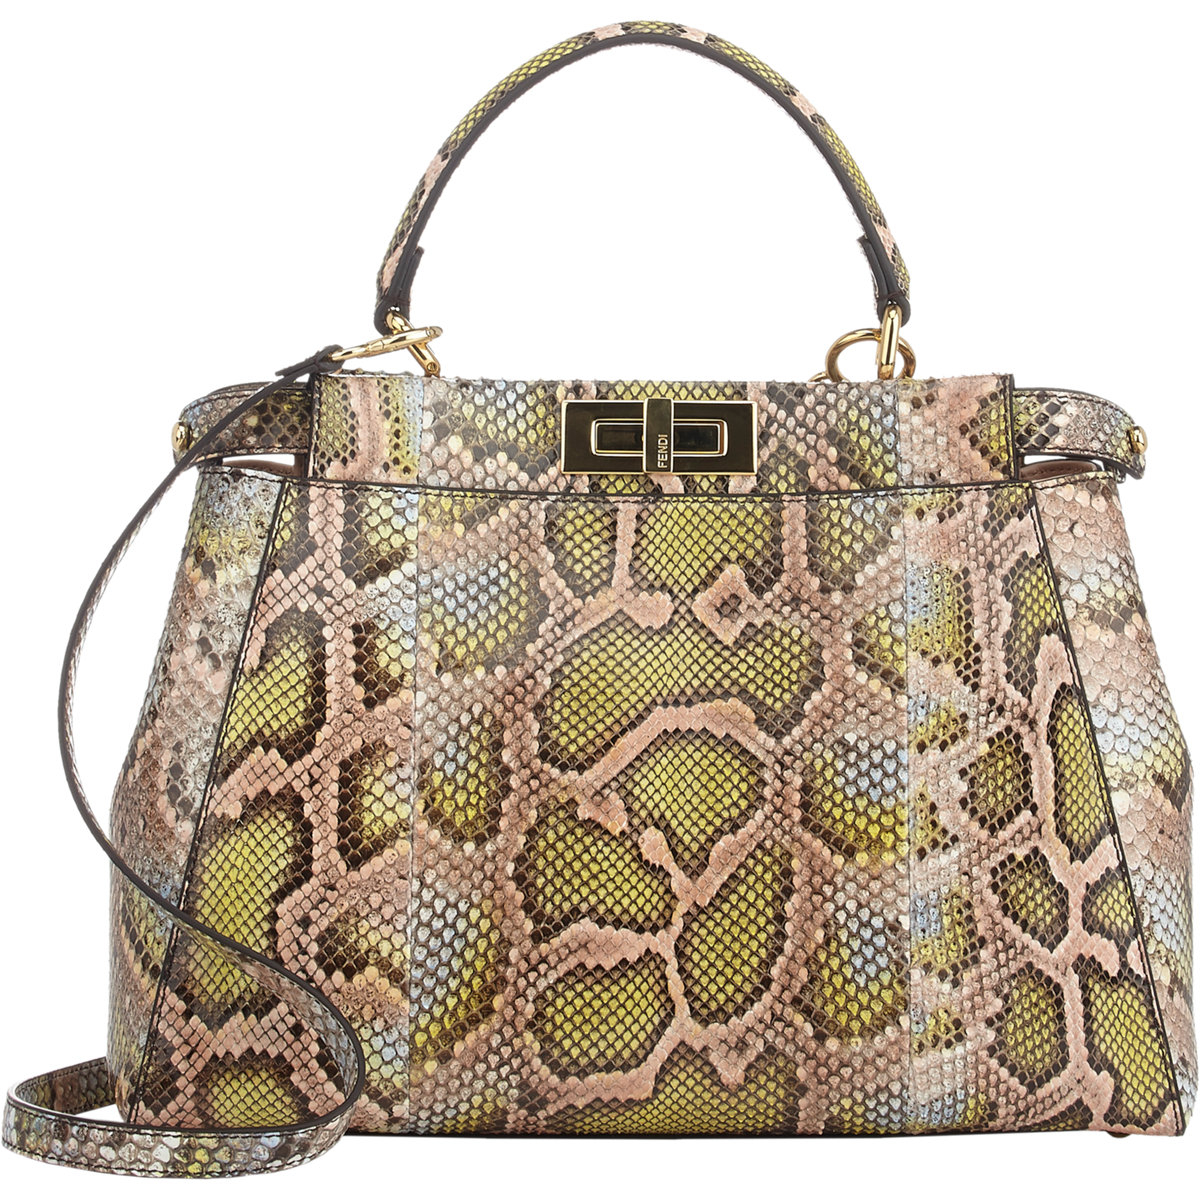 Lyst - Fendi Python Peekaboo Bag in Natural be5e48b4d29e2